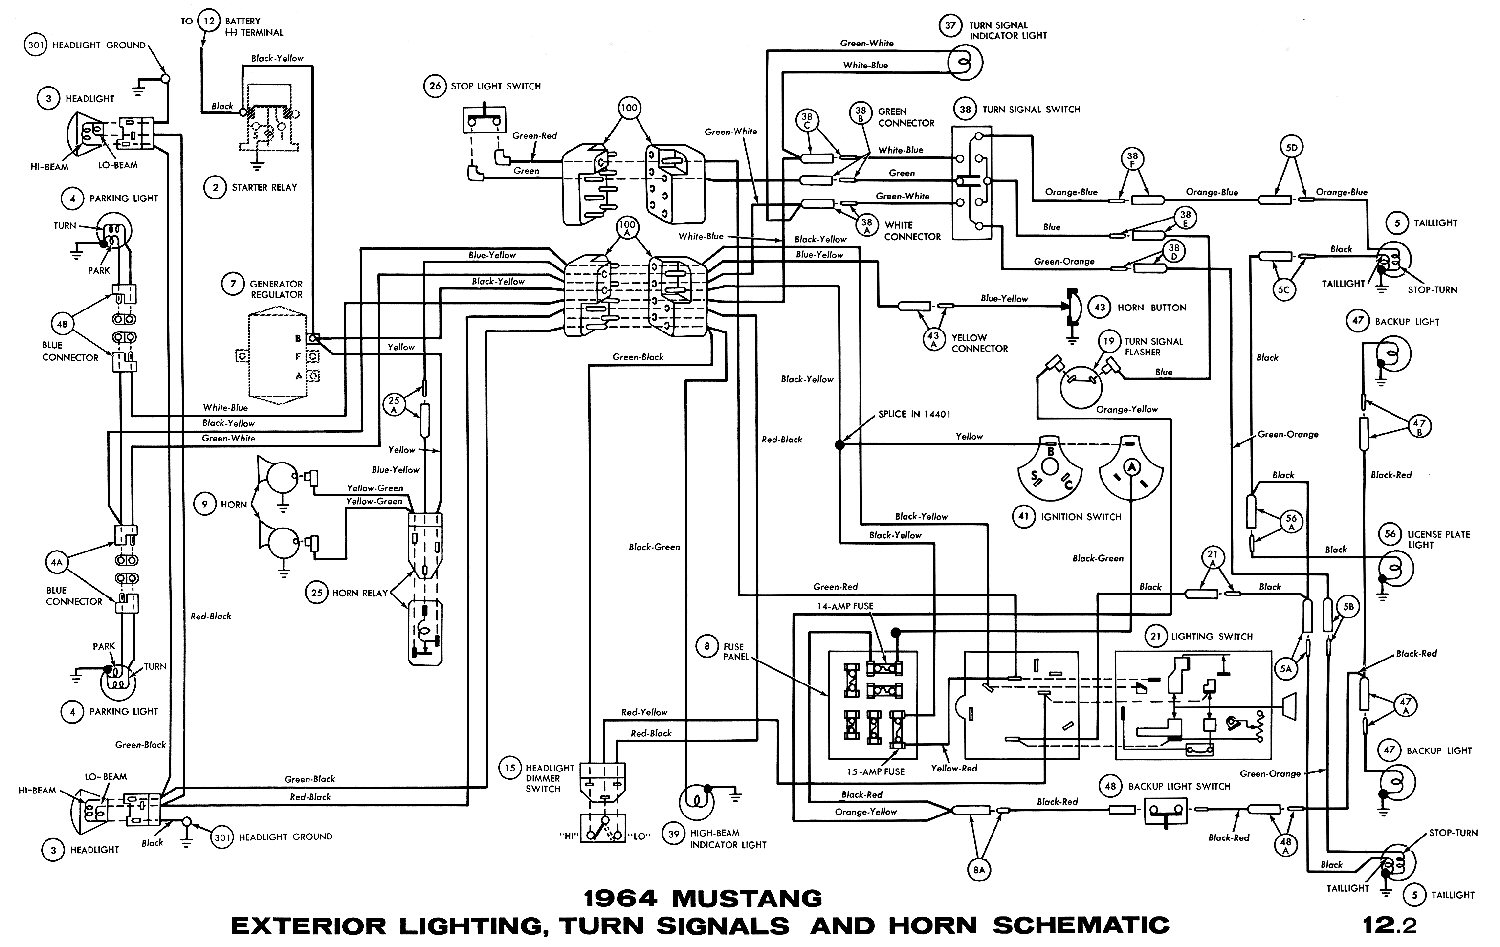 1964i 1964 mustang wiring diagrams average joe restoration 68 mustang headlight wiring diagram at readyjetset.co